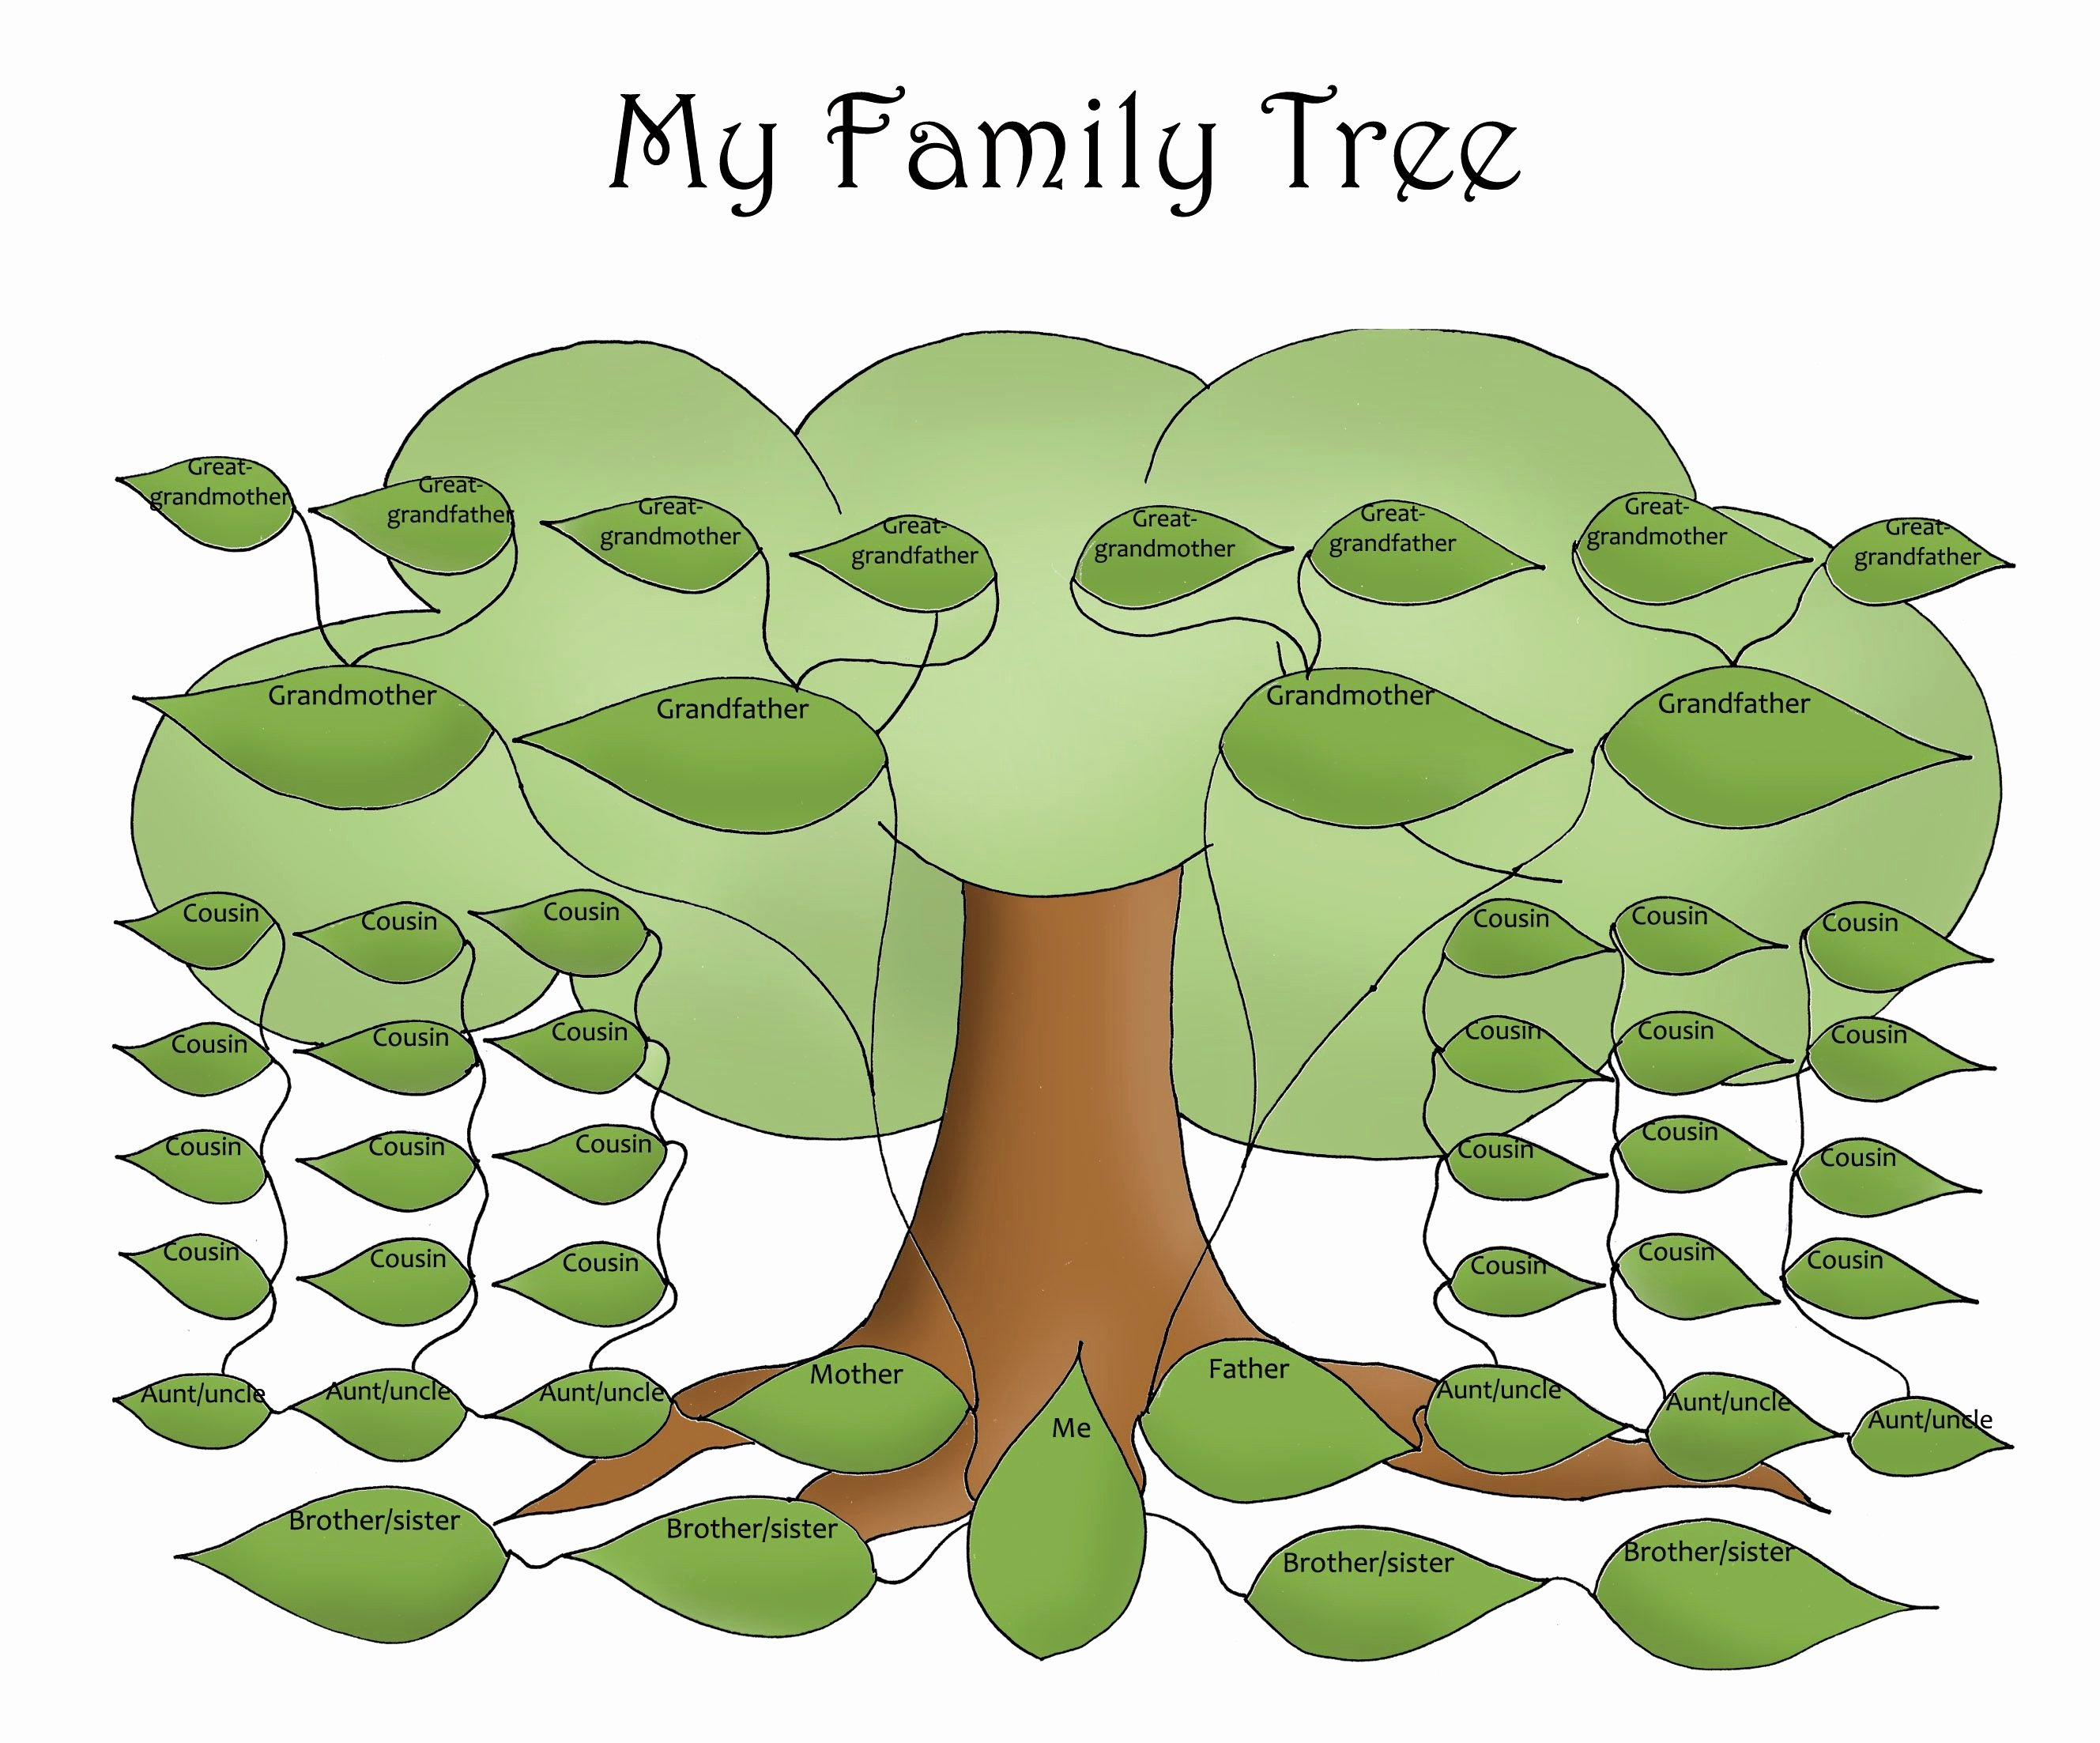 Free Family Tree Template Elegant Free Editable Family Tree Template Daily Roabox